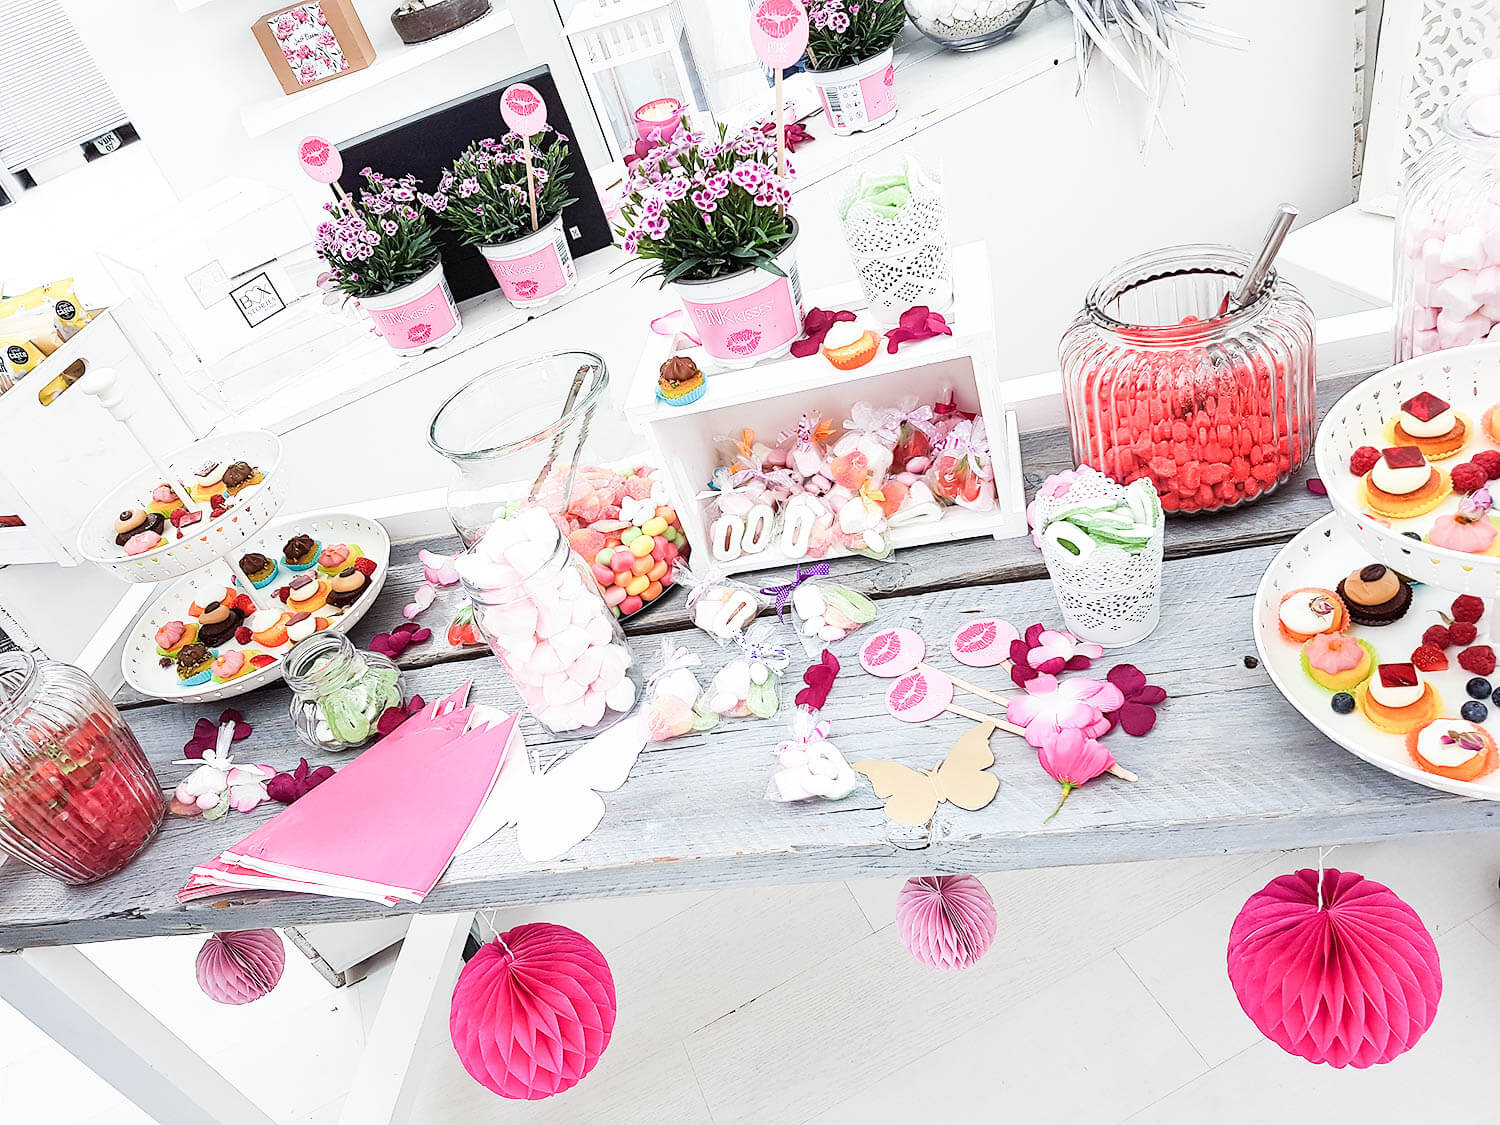 Kationette-lifestyleblog-Lifestyle-Launch-blogger-Event-Box-Stories-gofeminin-flowercrown-whiteloft-duesseldorf